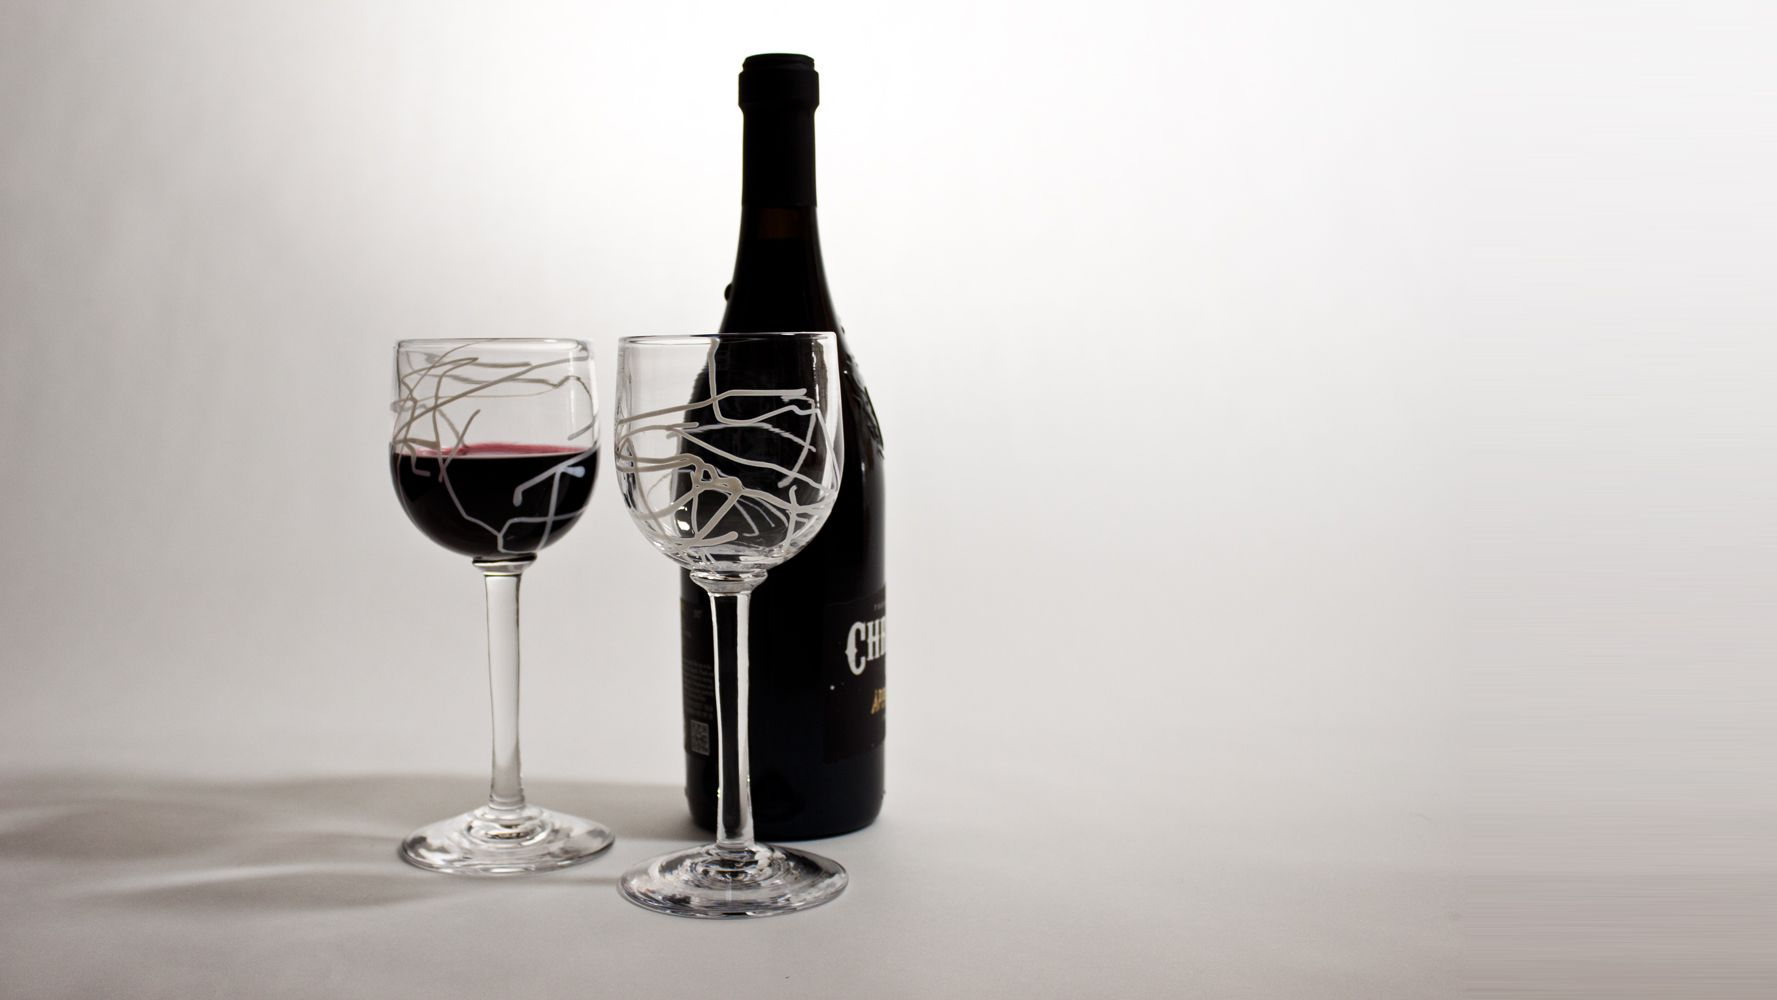 Wine glasses for red and white